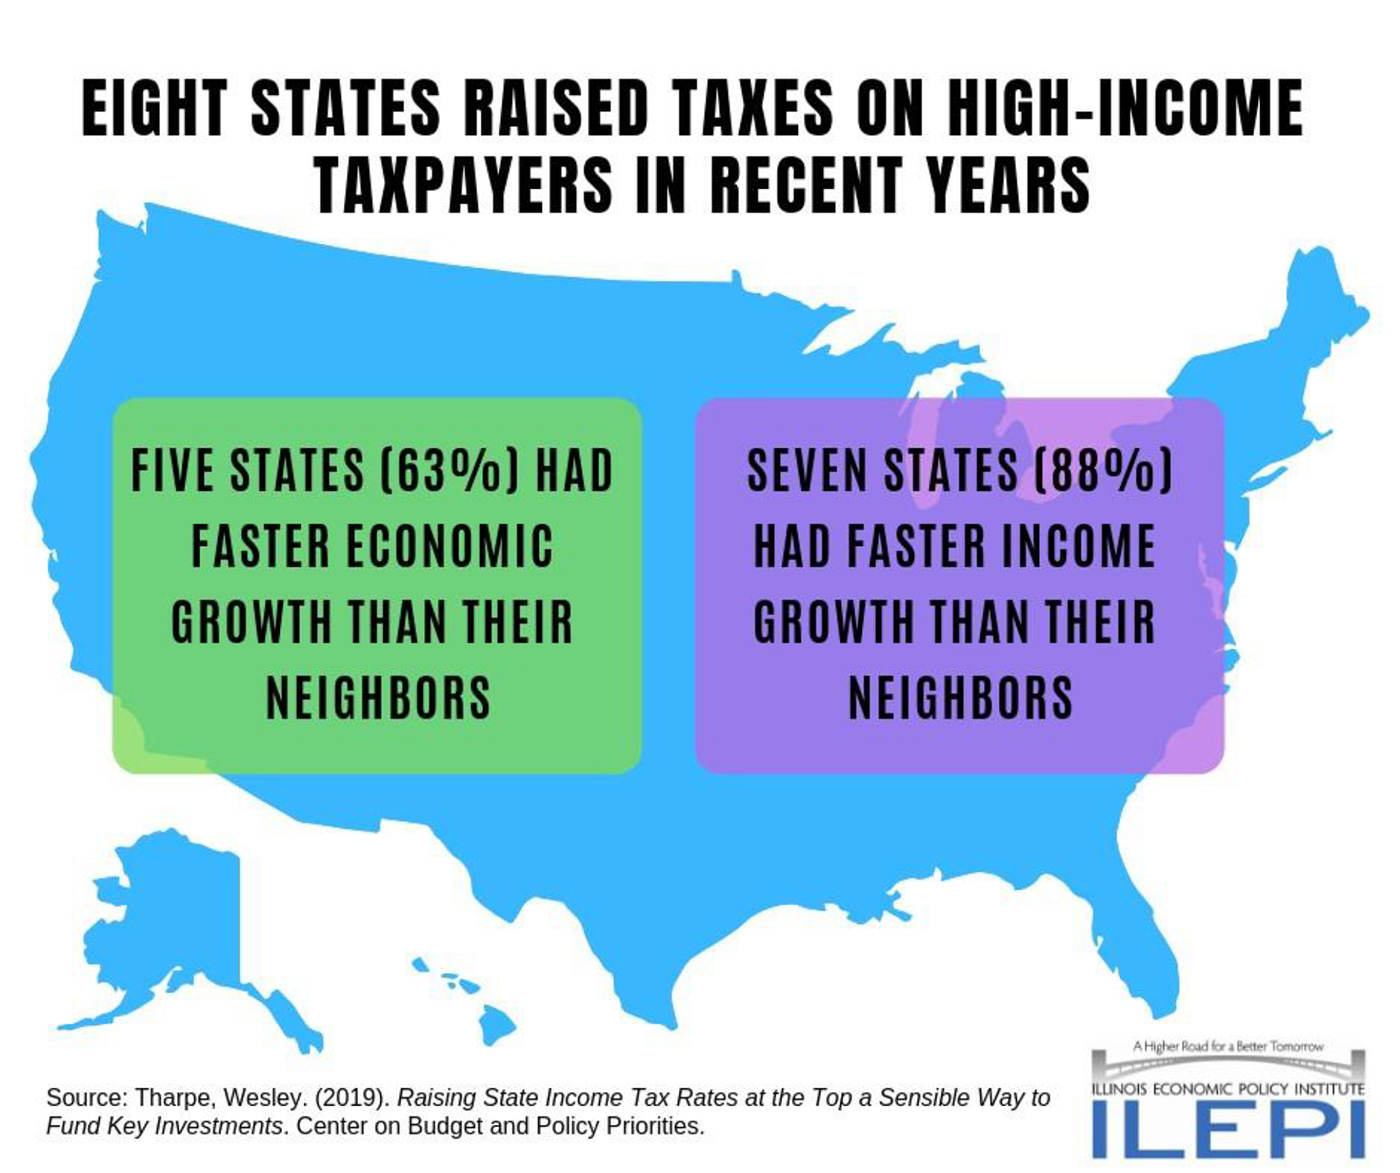 Eight states raised taxes on high income taxpayers in recent years